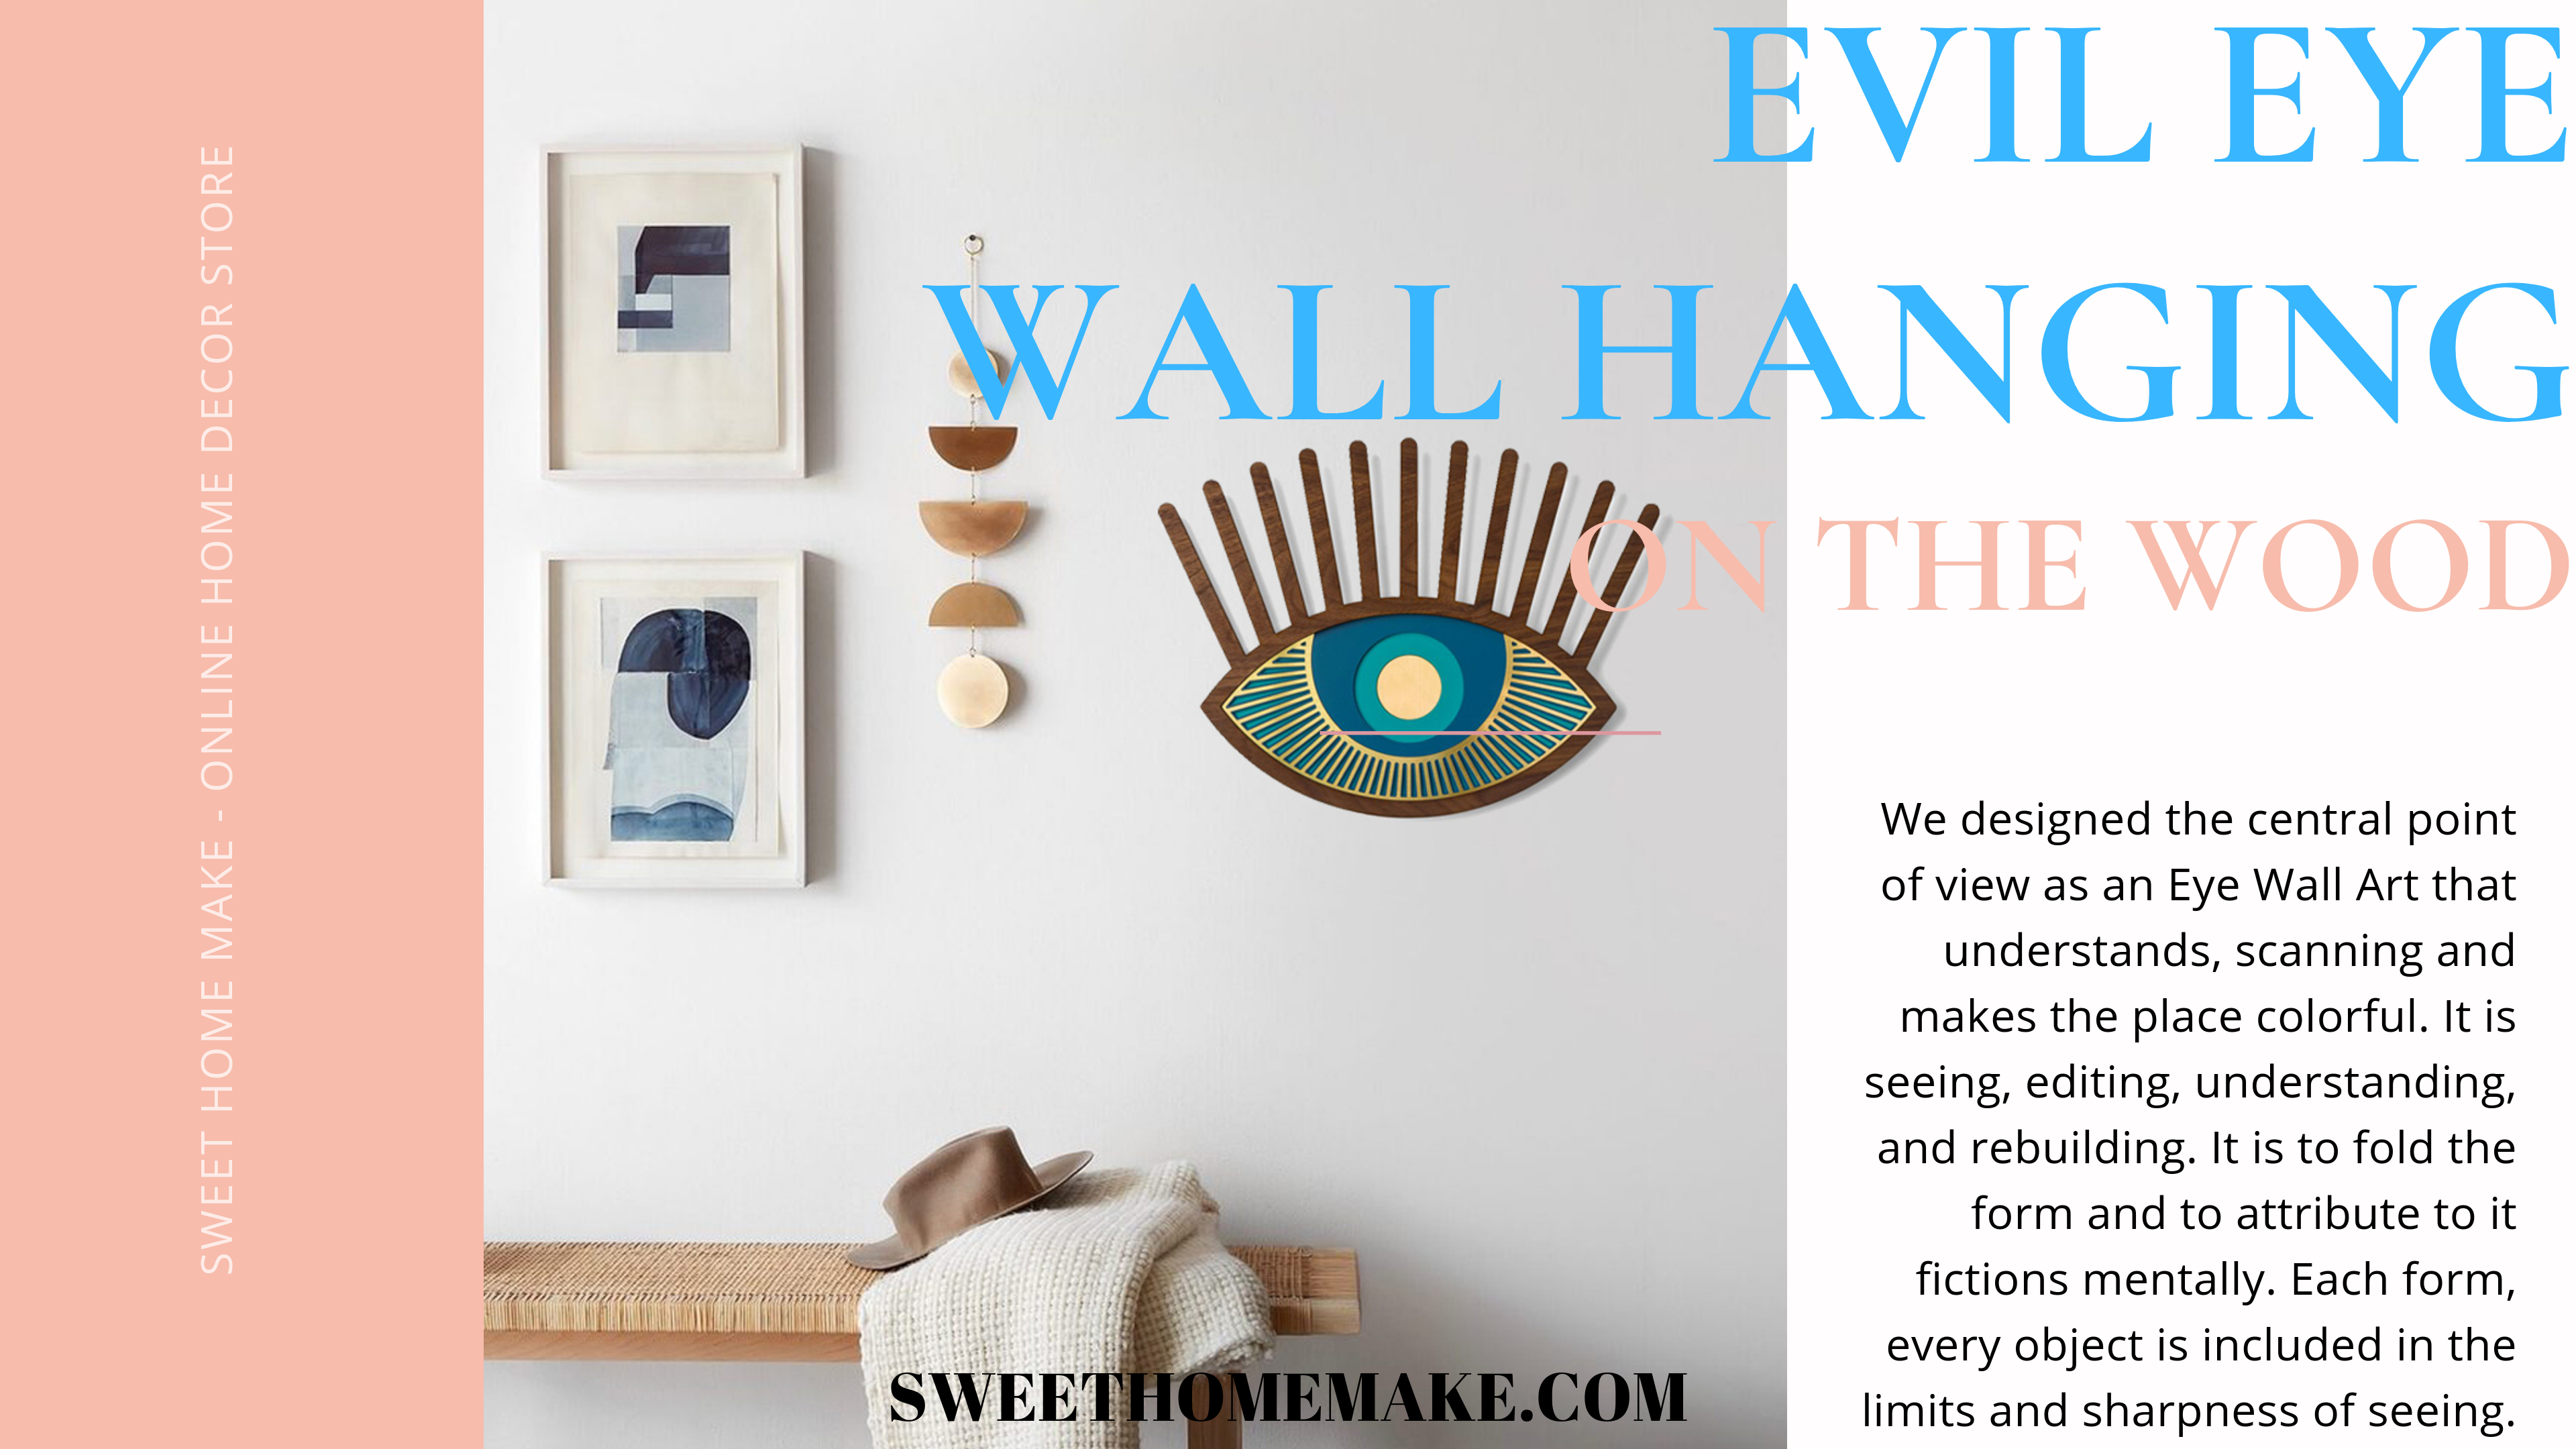 Evil Eye Wall Hanging Decorative Items